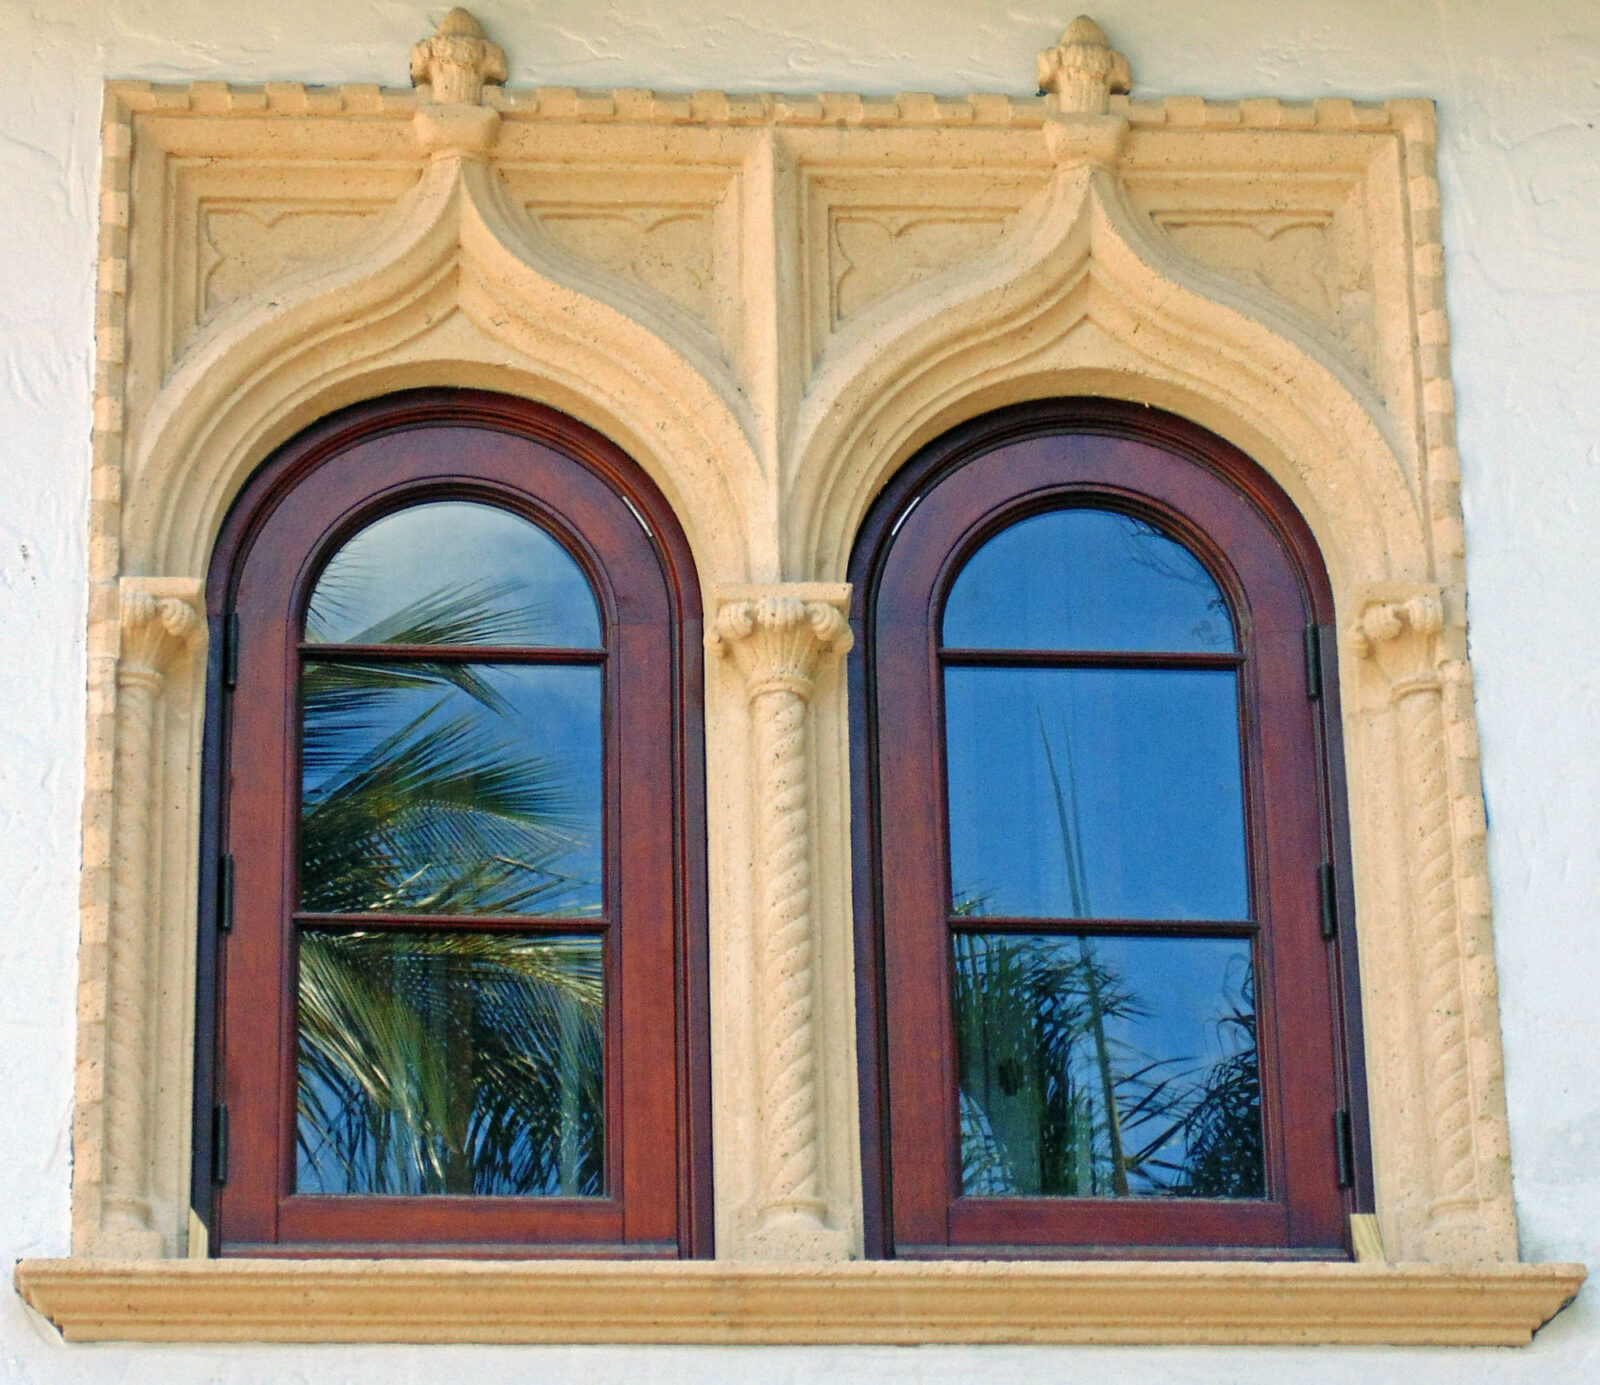 PALM ISLAND MAHOGANY ARCHED WINDOWS